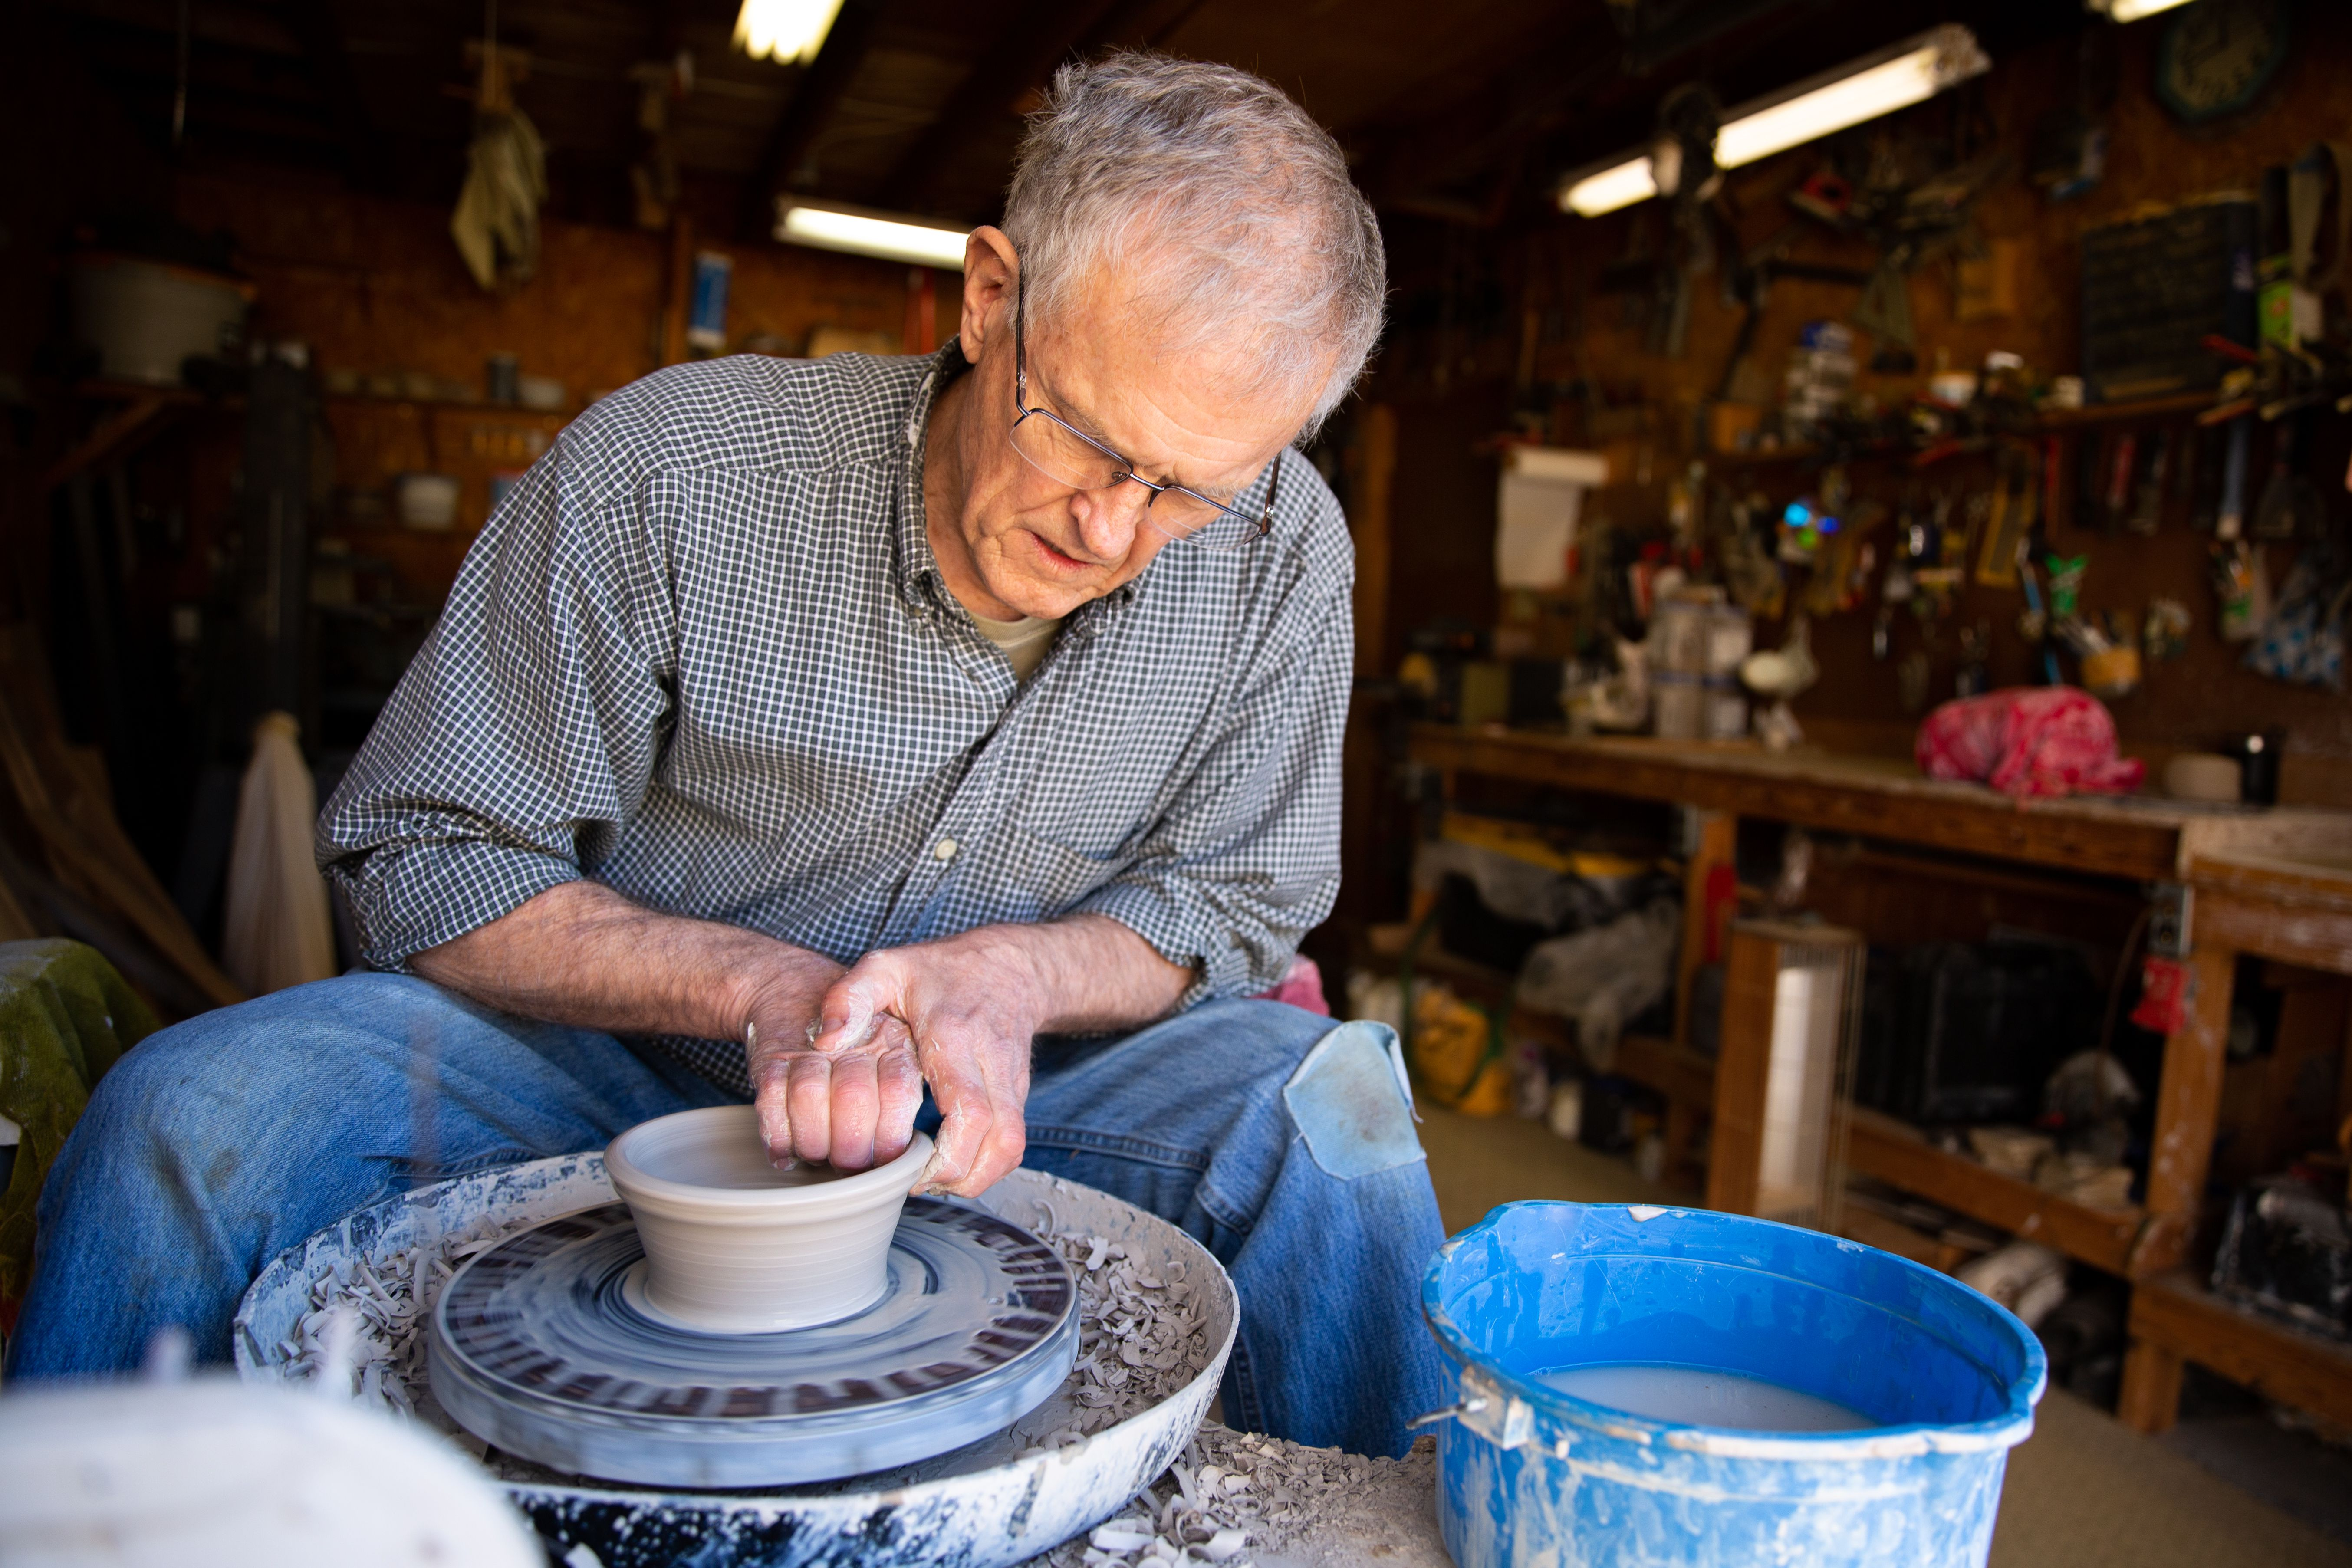 Retired engineer turns to pottery to help make the world a better